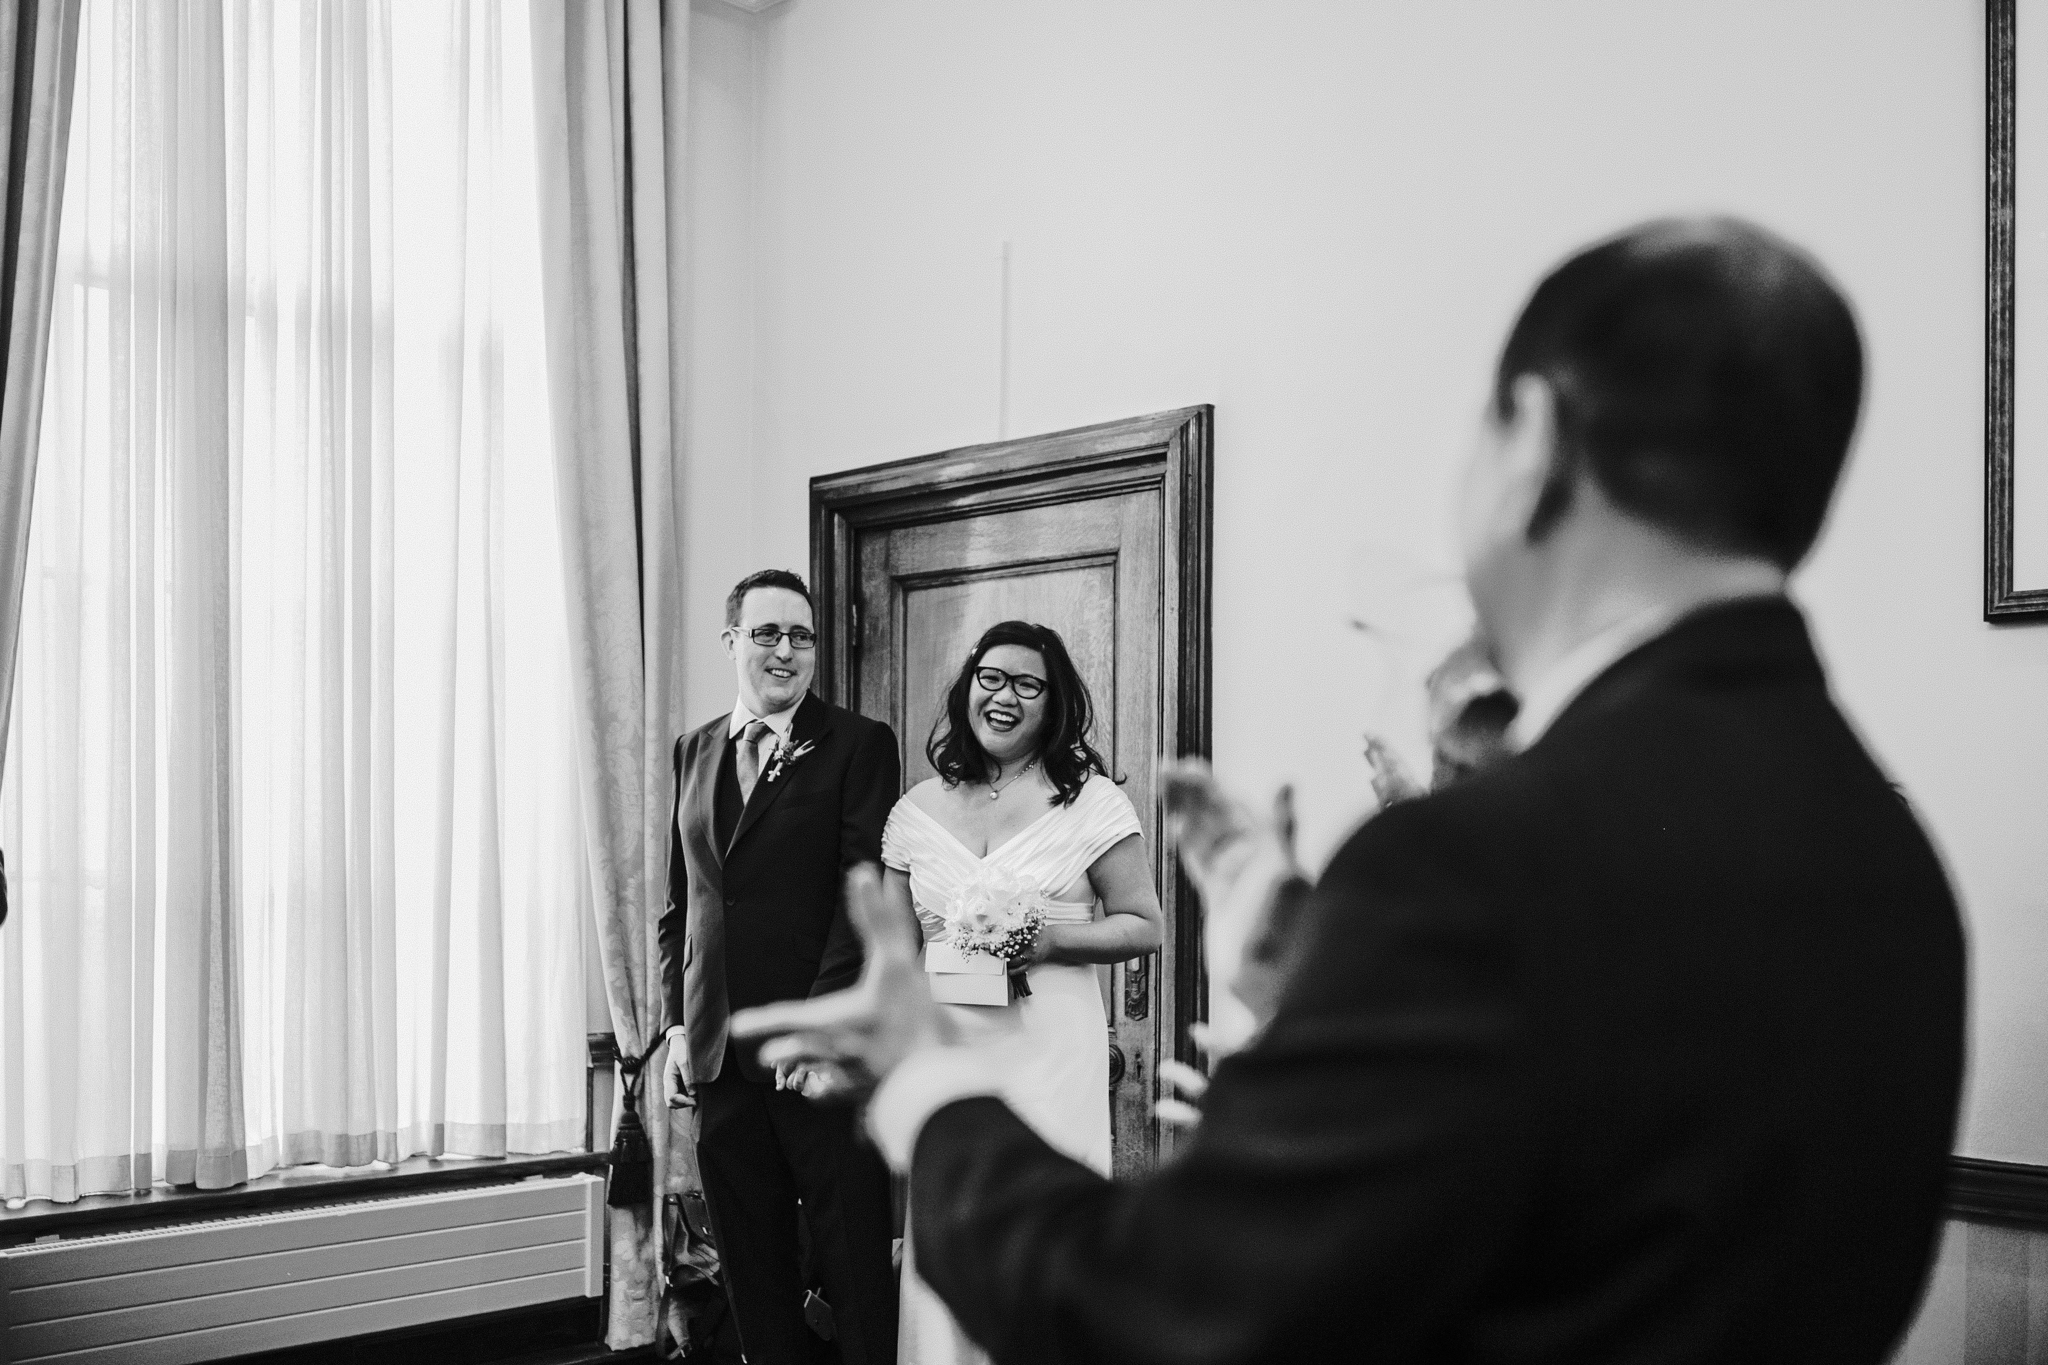 wedding photographer in london islington town hall - first look between bride and groom ceremony photos